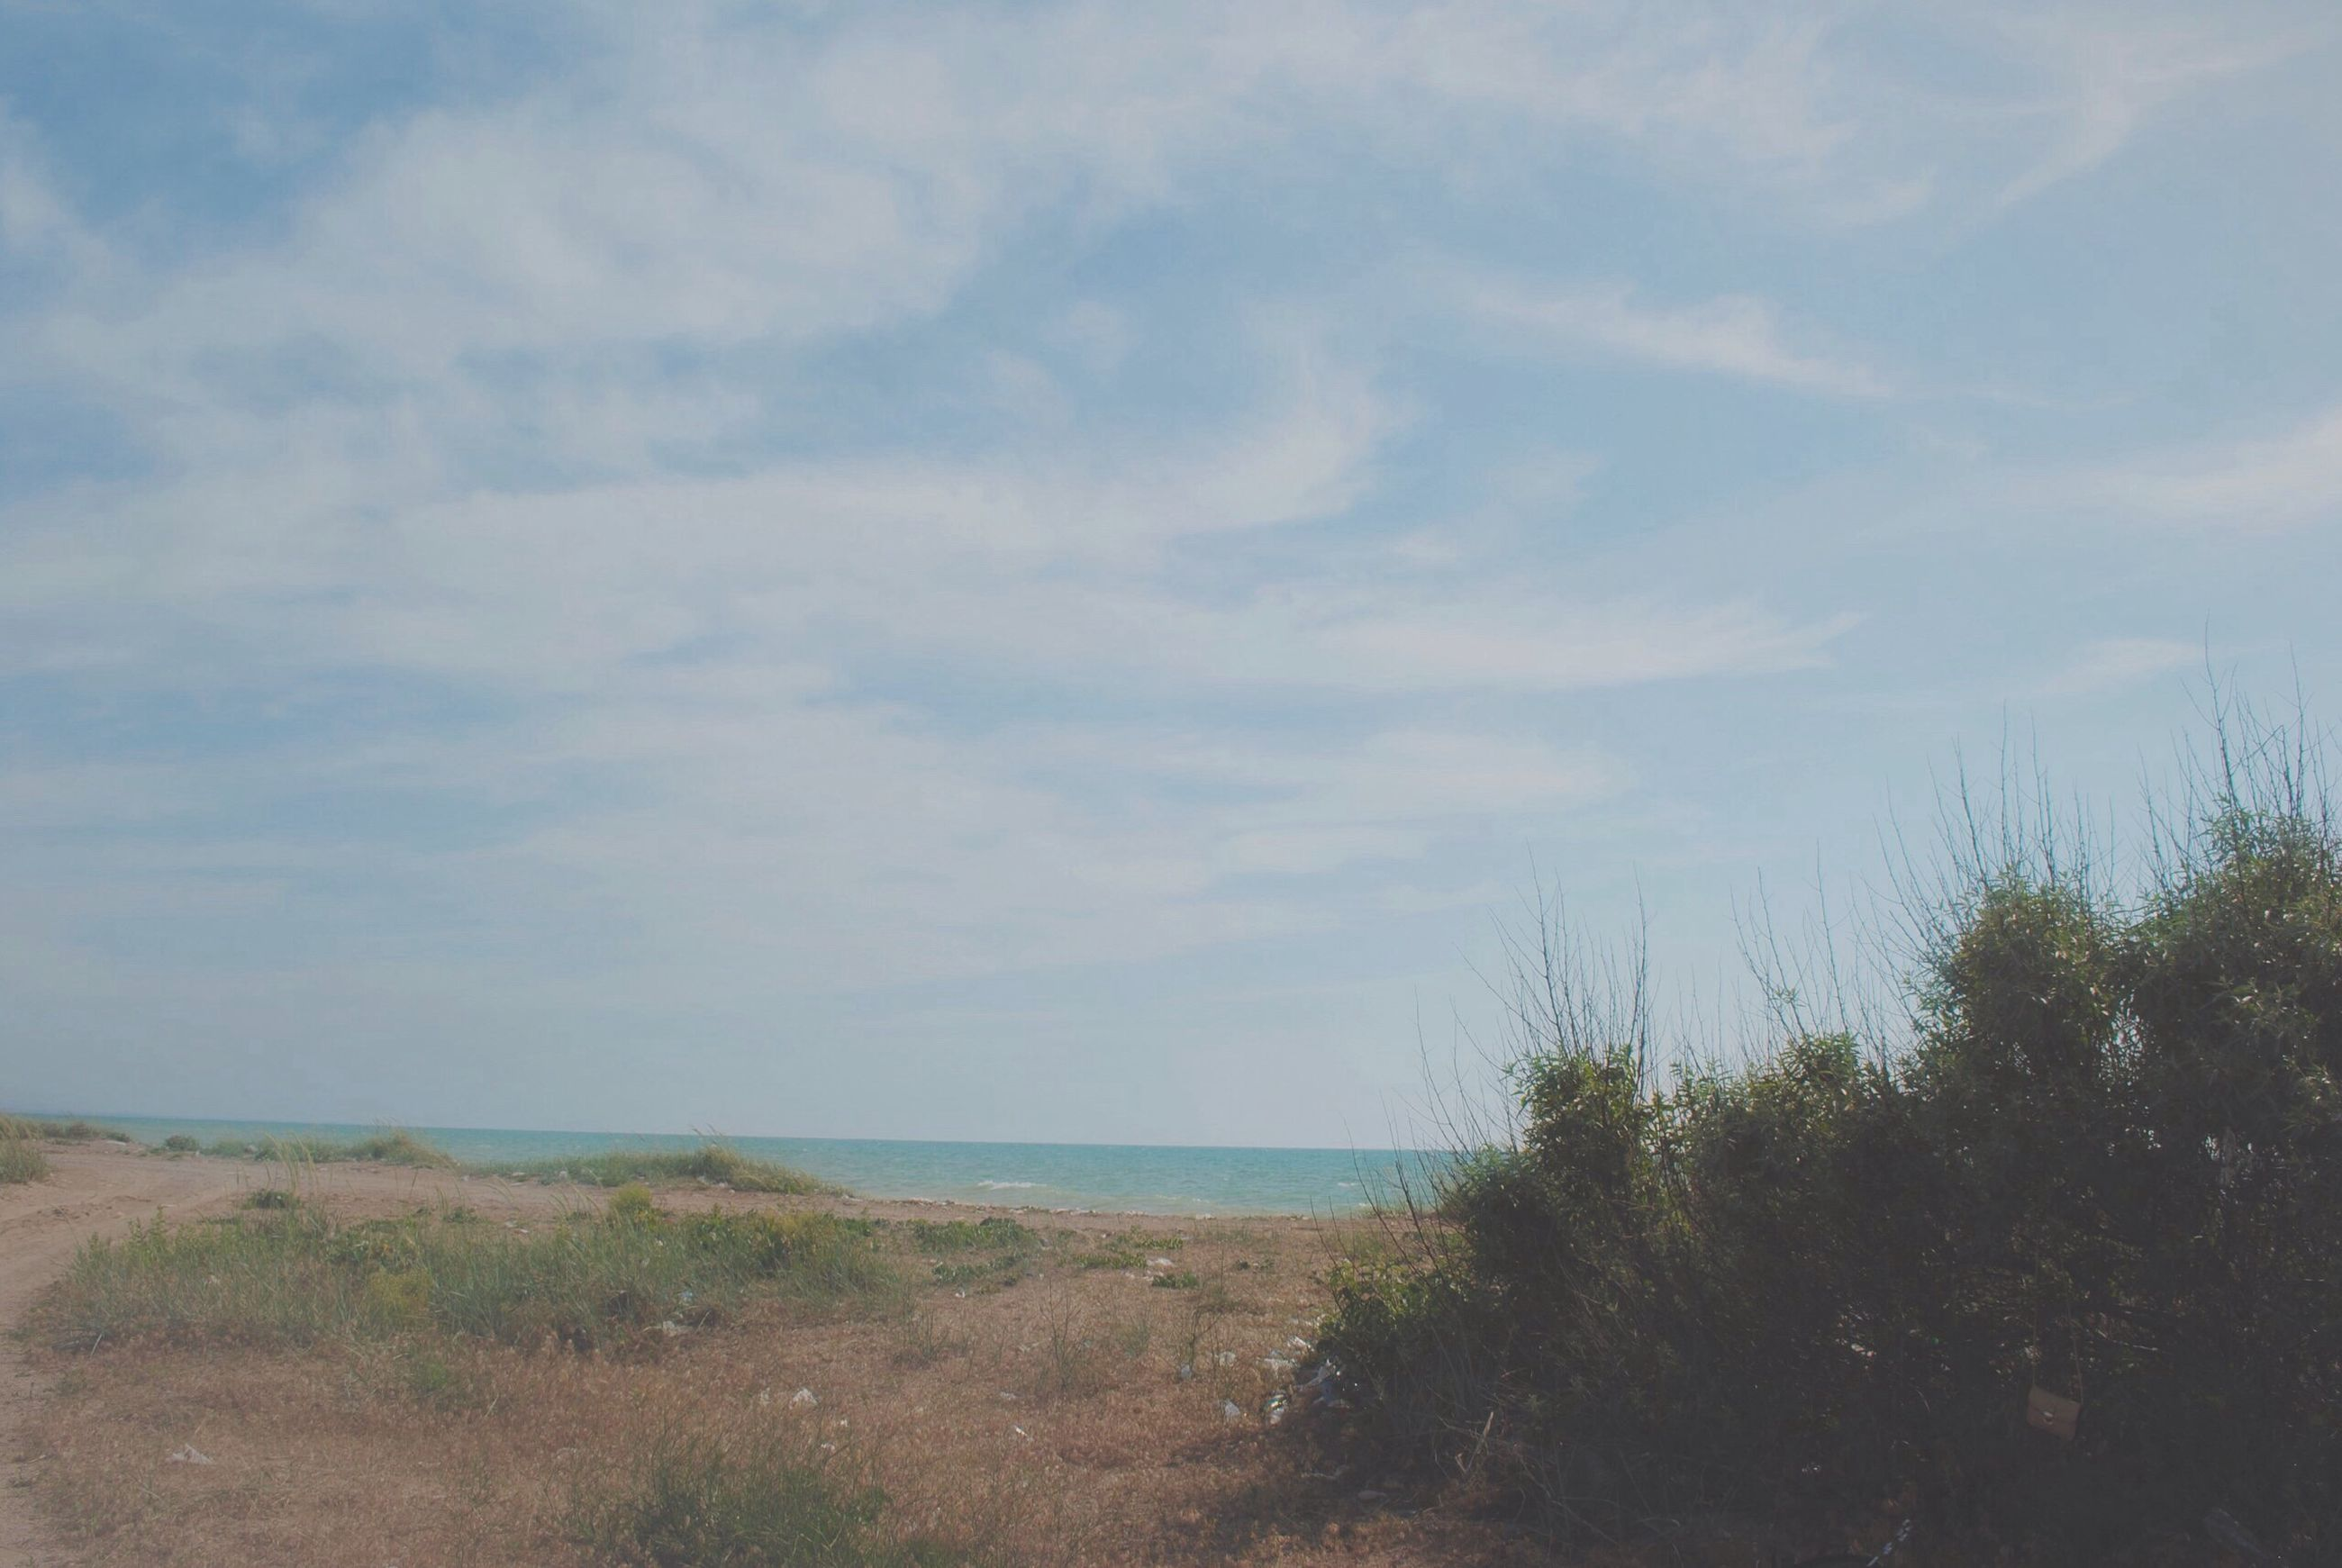 sea, sky, nature, beach, water, scenics, tranquility, tree, tranquil scene, beauty in nature, outdoors, no people, day, growth, horizon over water, cloud - sky, marram grass